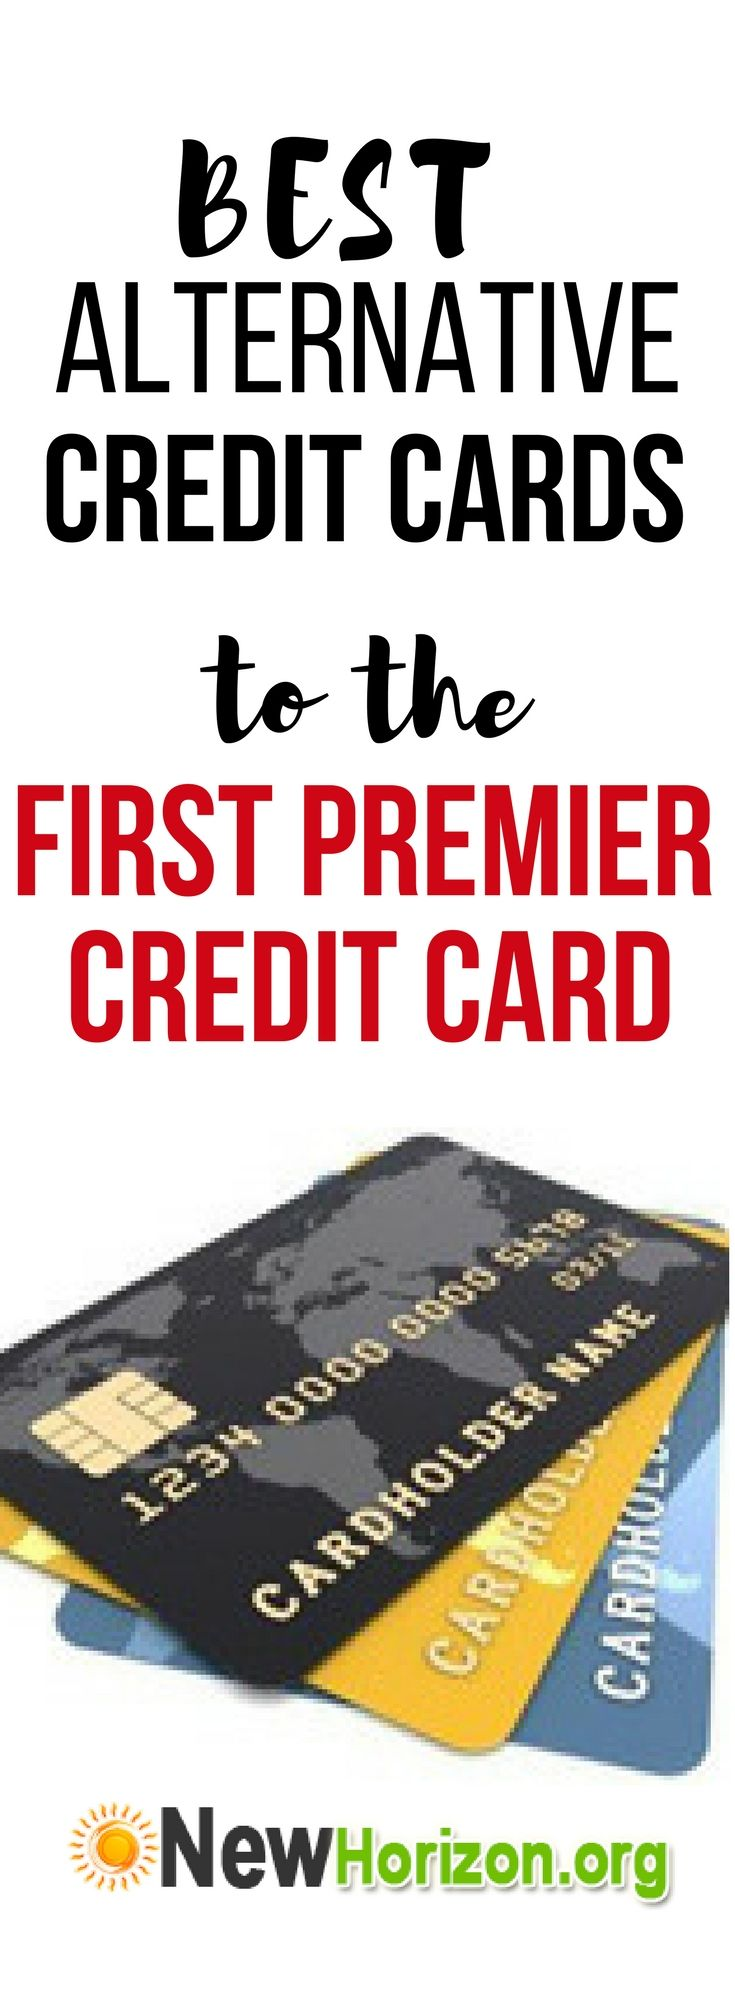 Great alternative credit cards to the First Premier Credit Card